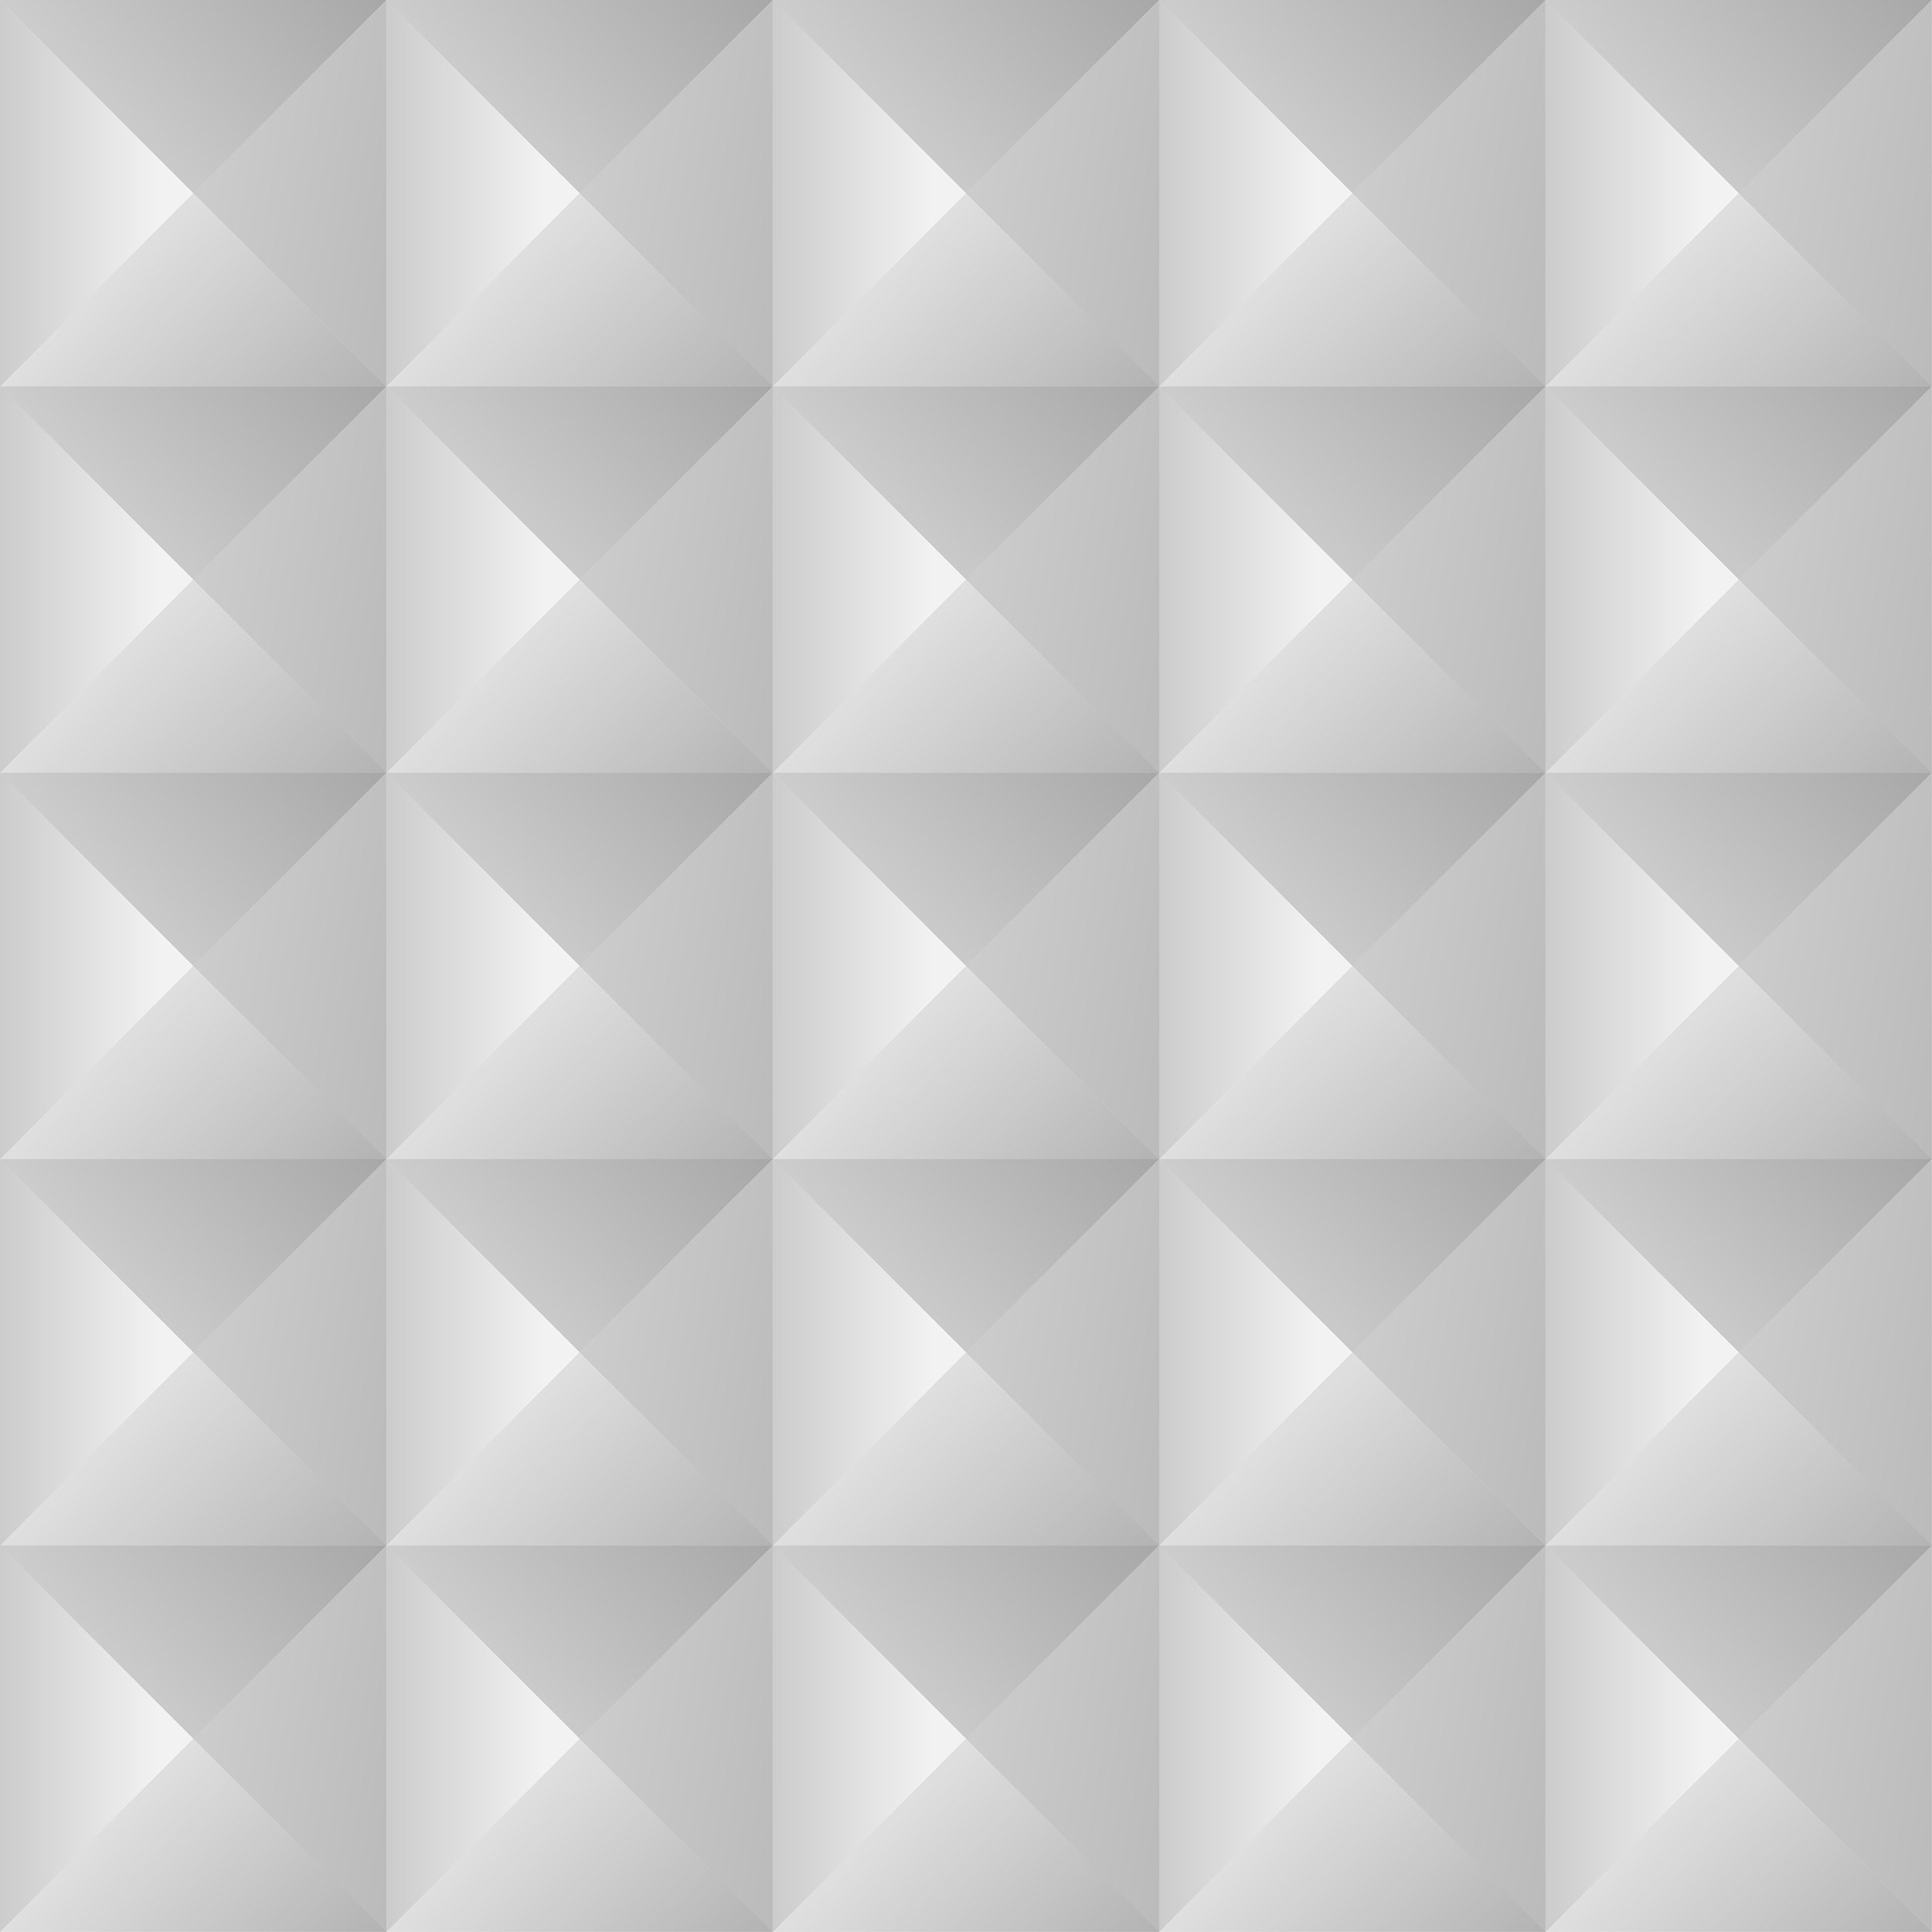 Seamless Vector Patterns Bundle example image 3